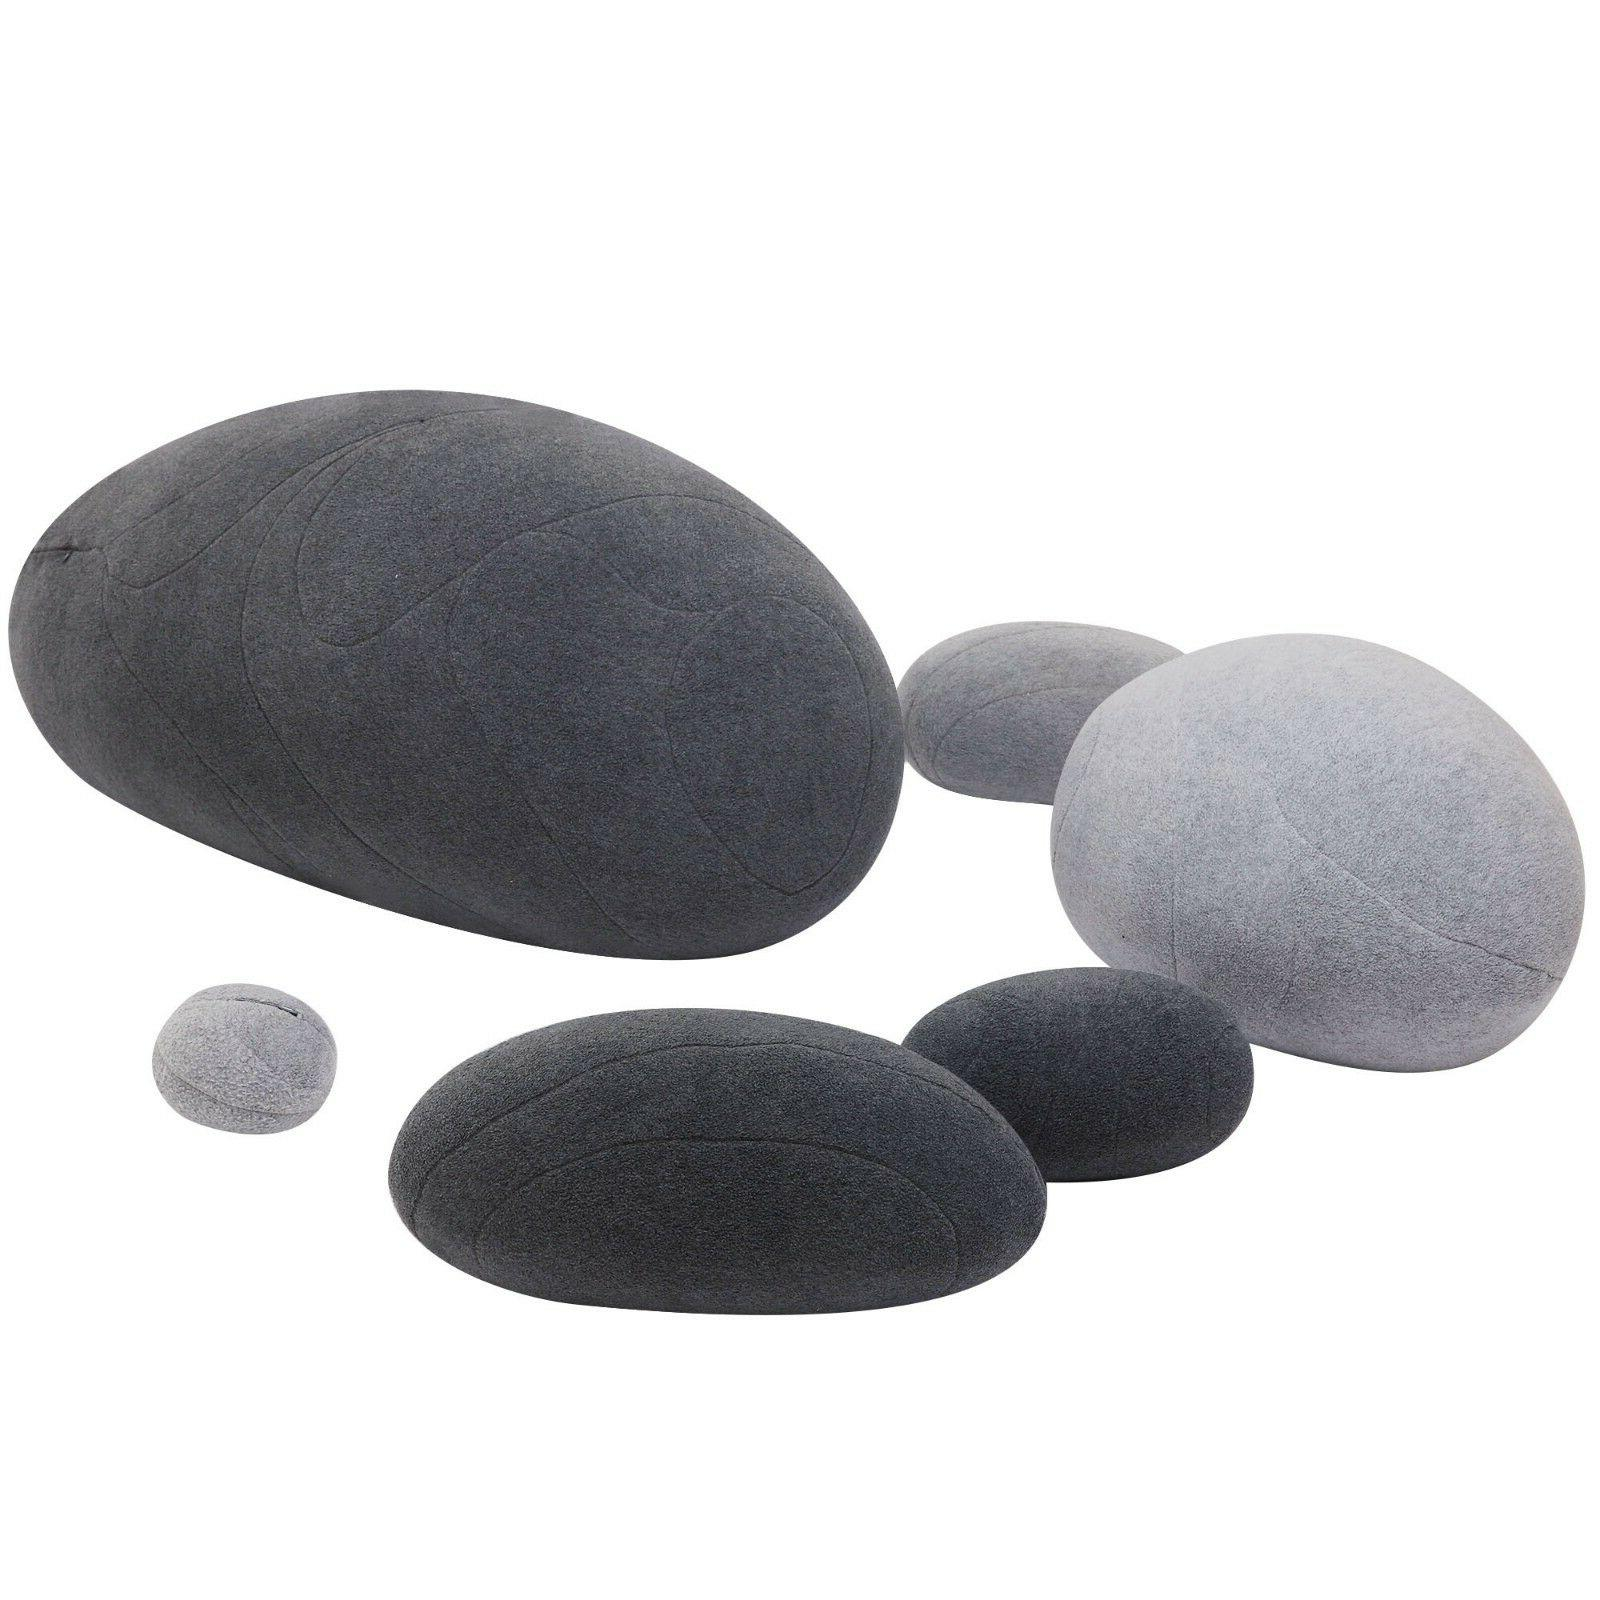 Pebble Stuffed Toys 6pcs